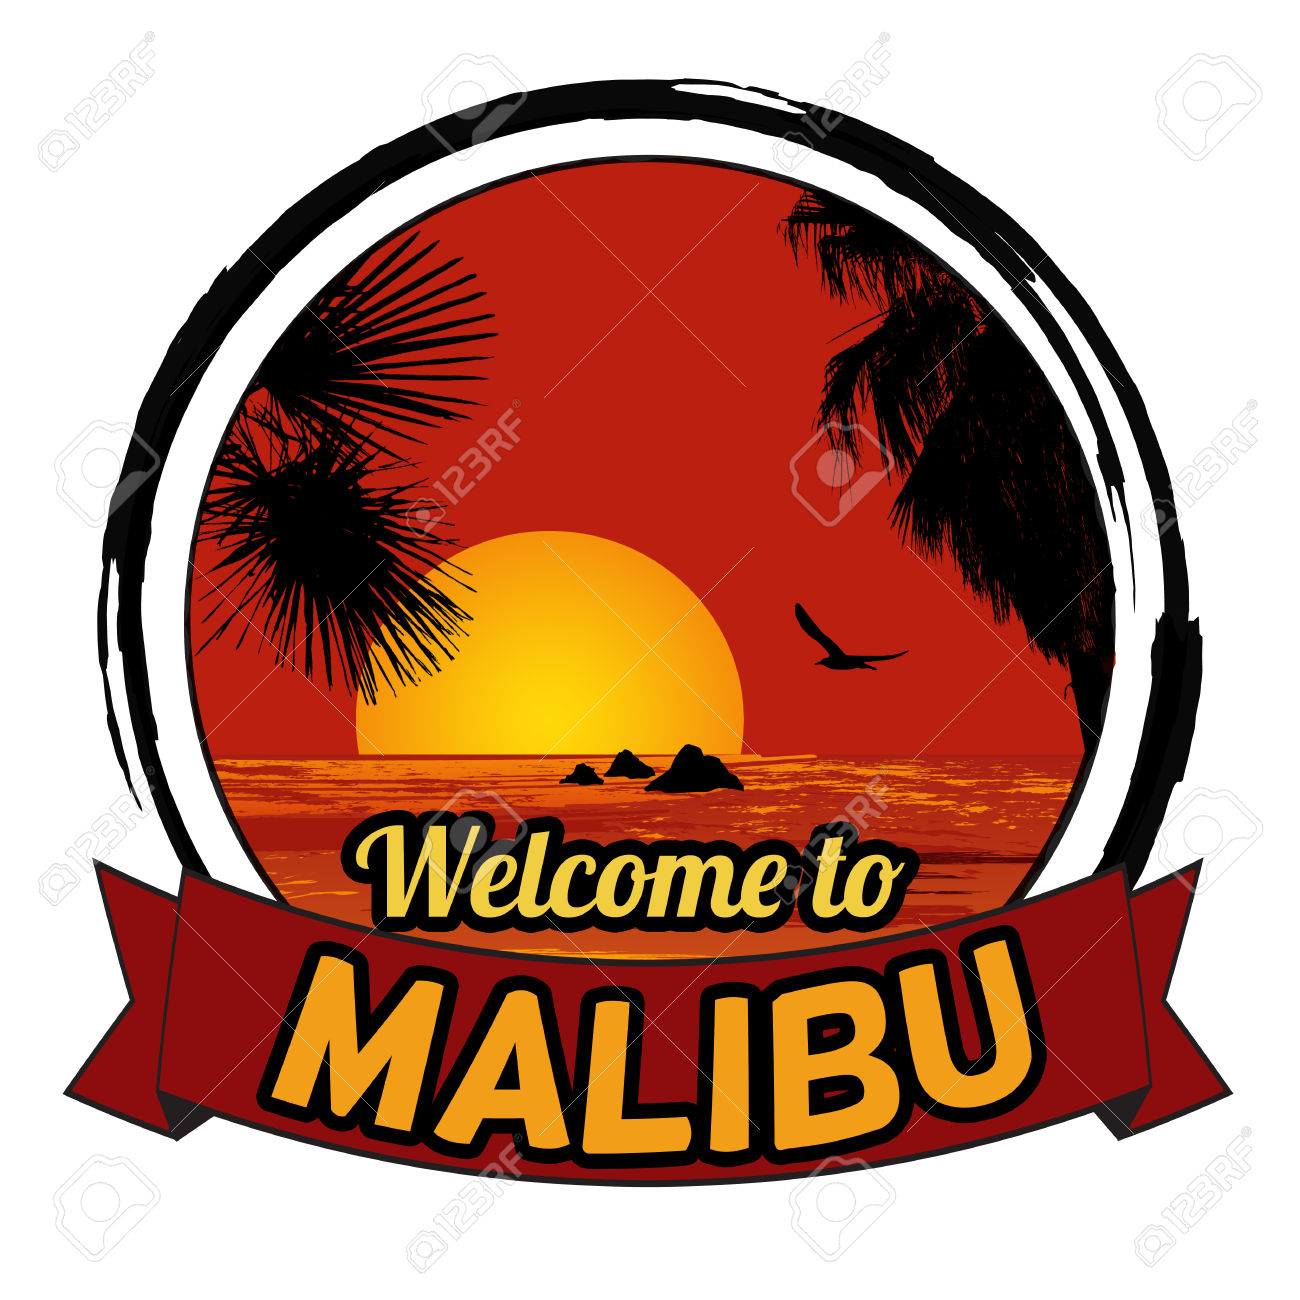 Welcome To Malibu Concept In Vintage Graphic Style For T.